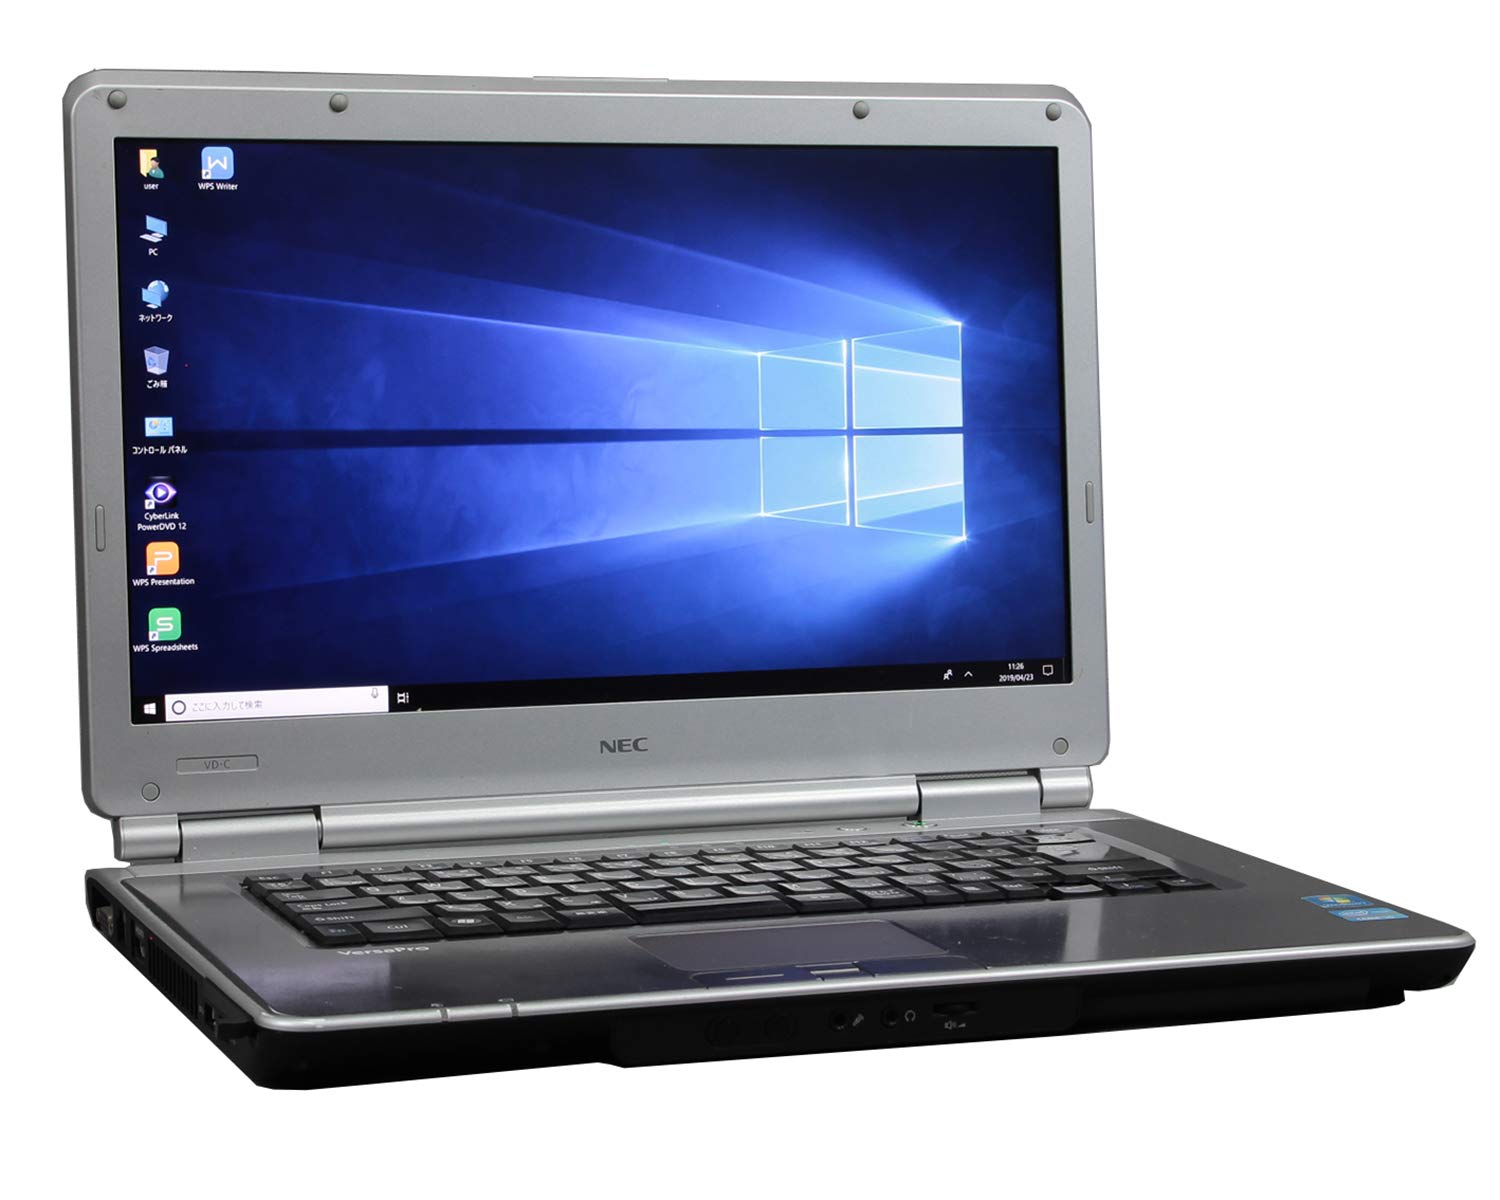 [ MS Office H&B 2010 ] NEC VersaPro VK25MD-C Win10 15.6インチ Core i5 2520M 2.50GHz メモリ4GB HDD250GB [ DVD-ROM ]   B07QZWDSTY